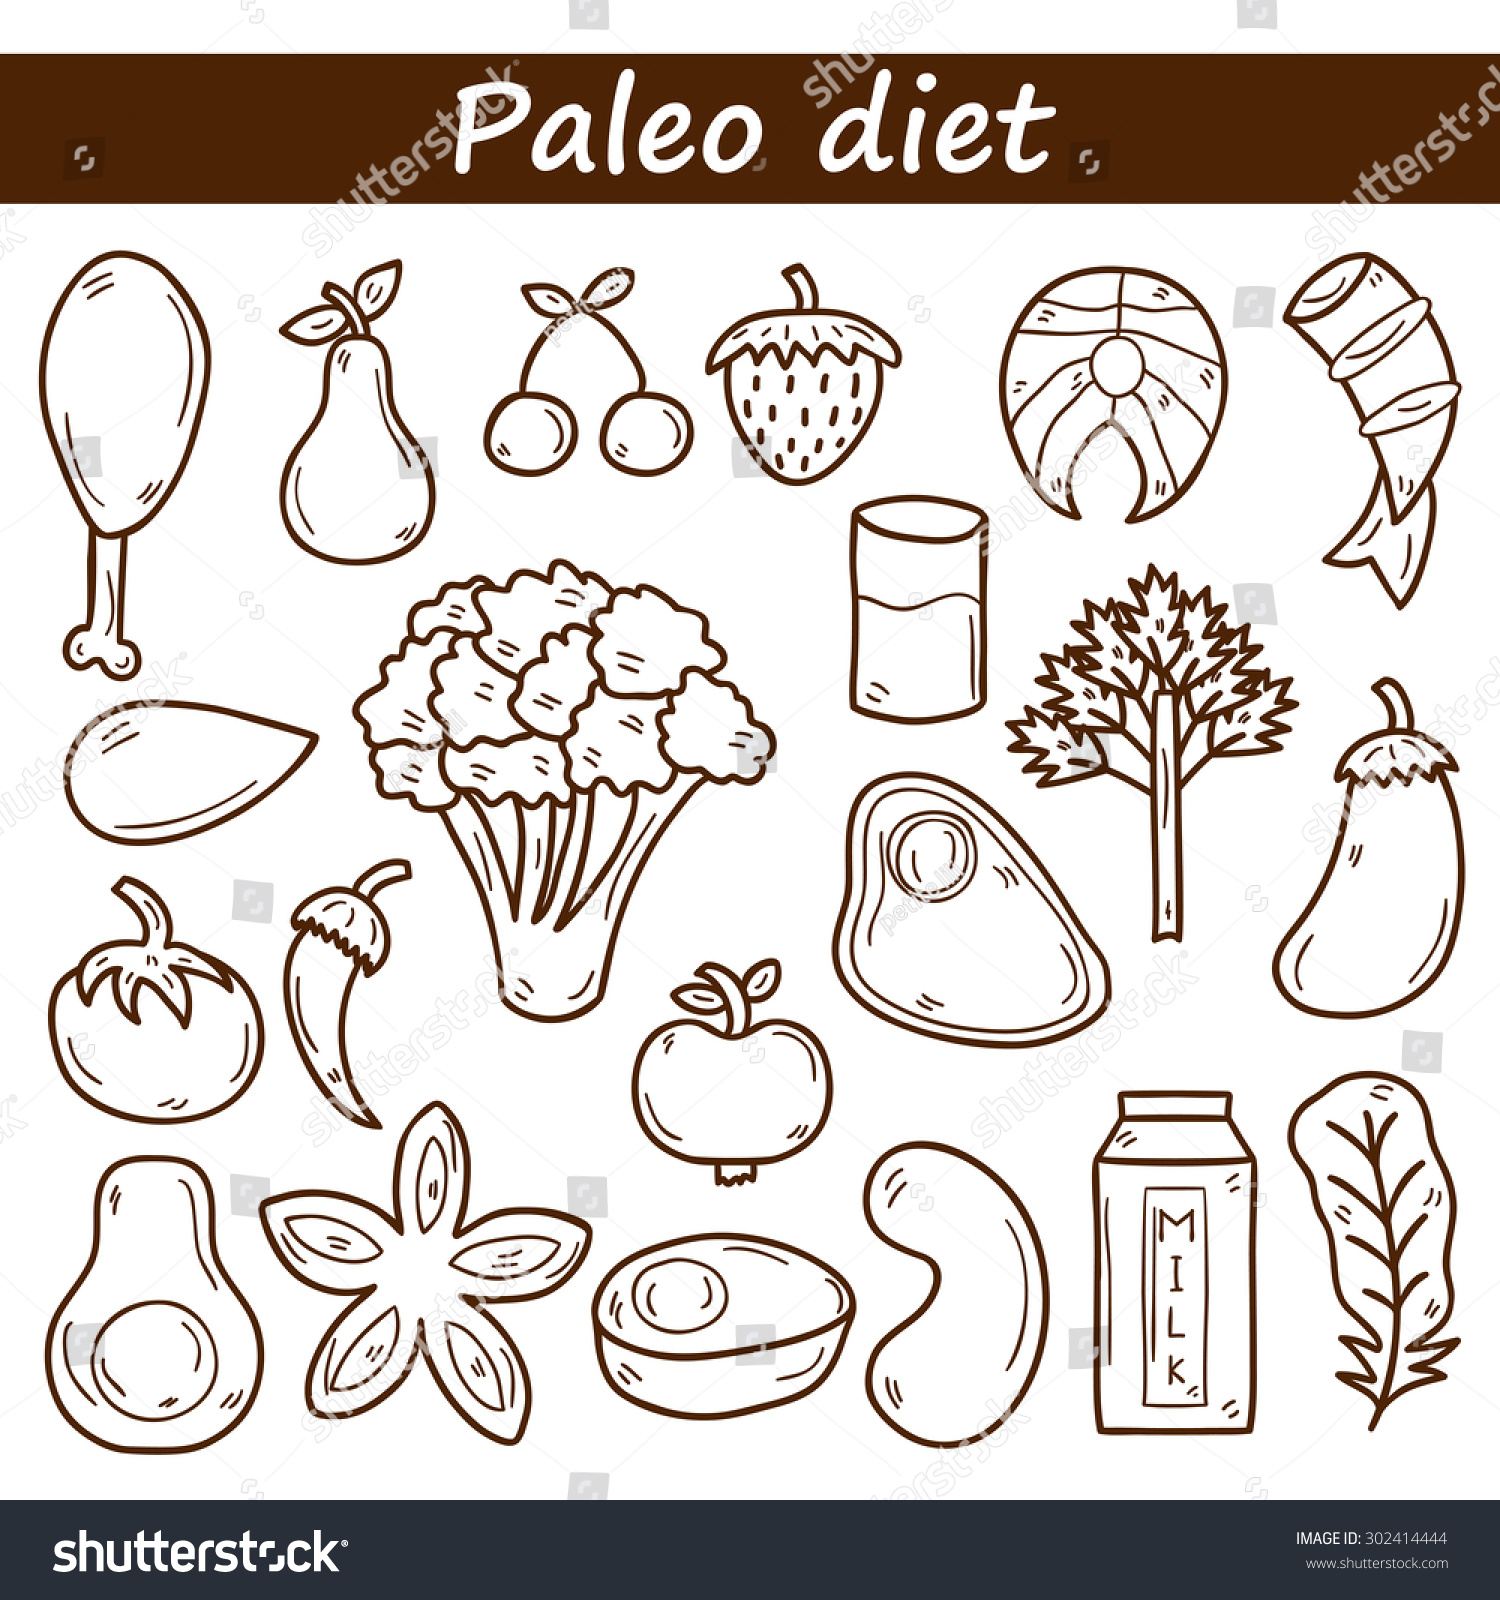 Set Of Objects In Hand Drawn Outline Style On Paleo Diet Theme: Meat, Fish, Fruits, Vegetables ...